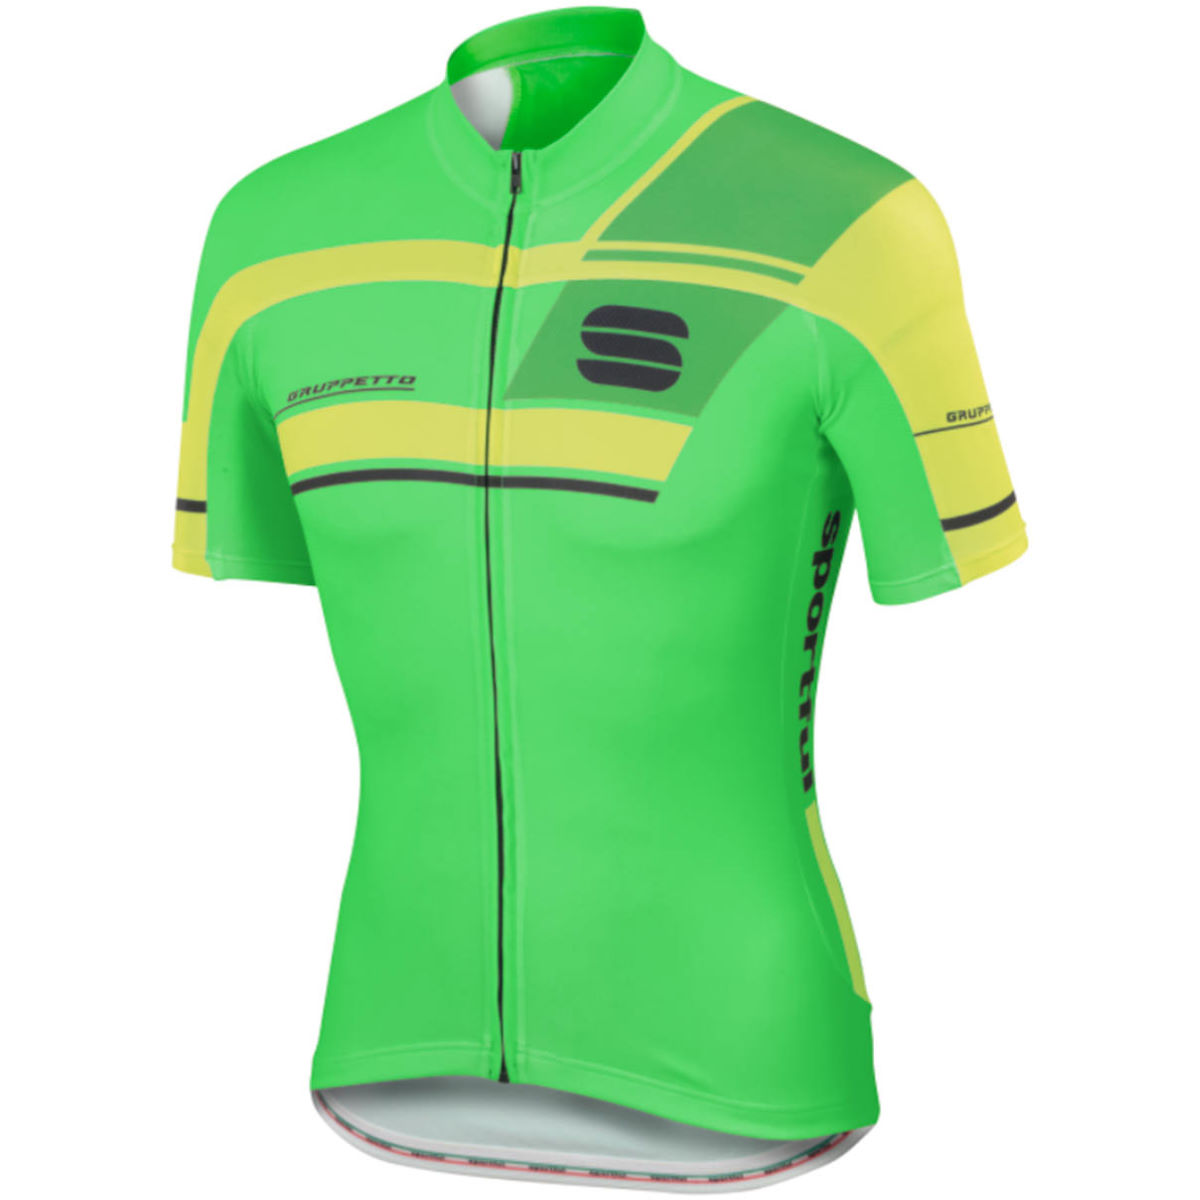 Maillot Sportful Gruppetto Pro Team (PE16) - XXL Green/Yellow Maillots vélo à manches courtes